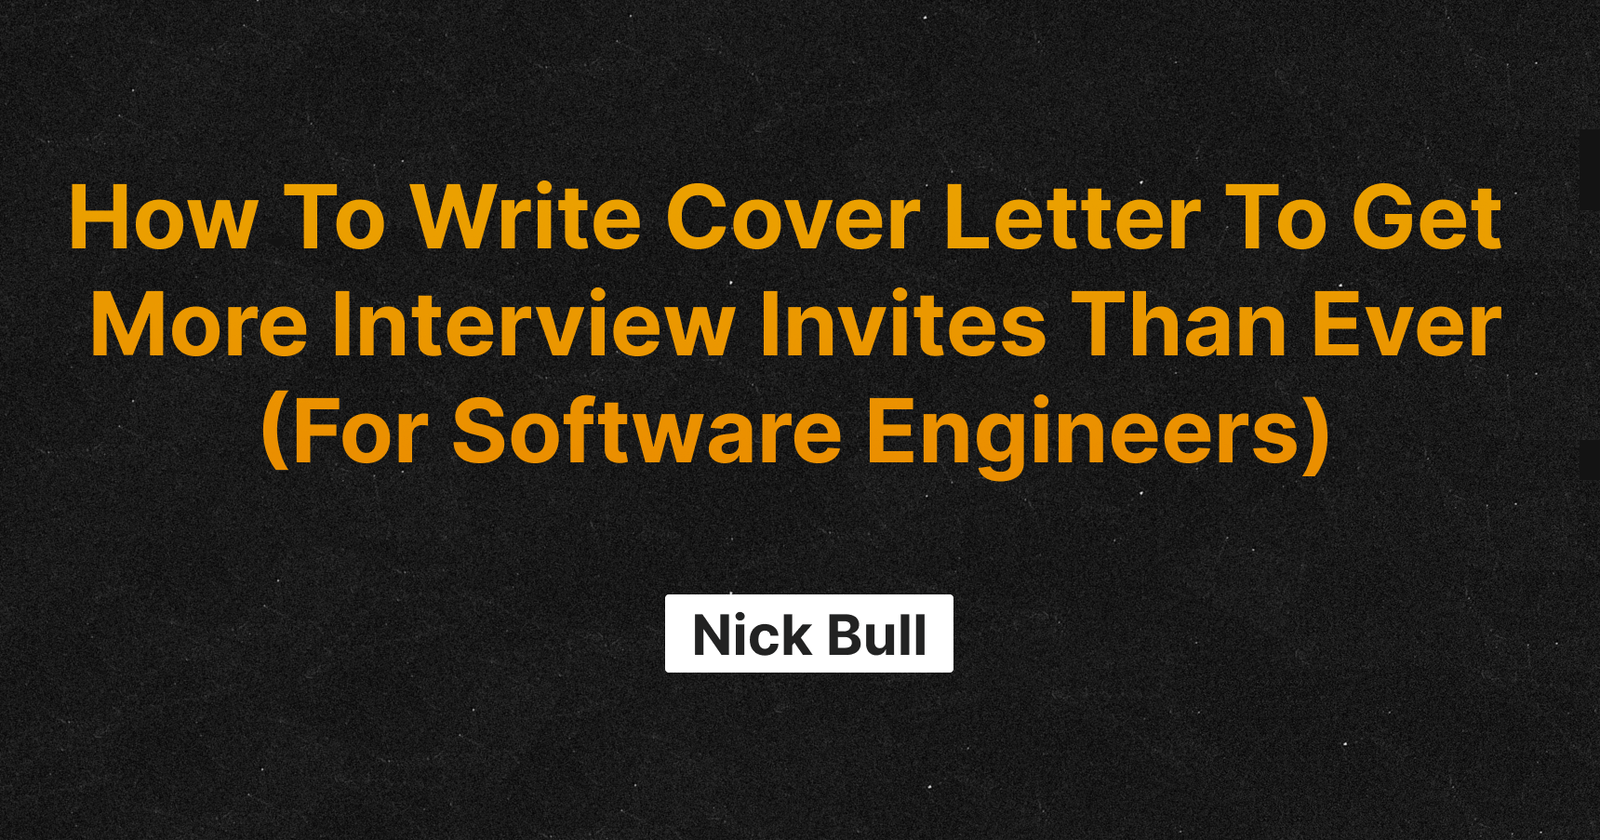 How To Write Cover Letter To Get More Interview Invites Than Ever (For Software Engineers)